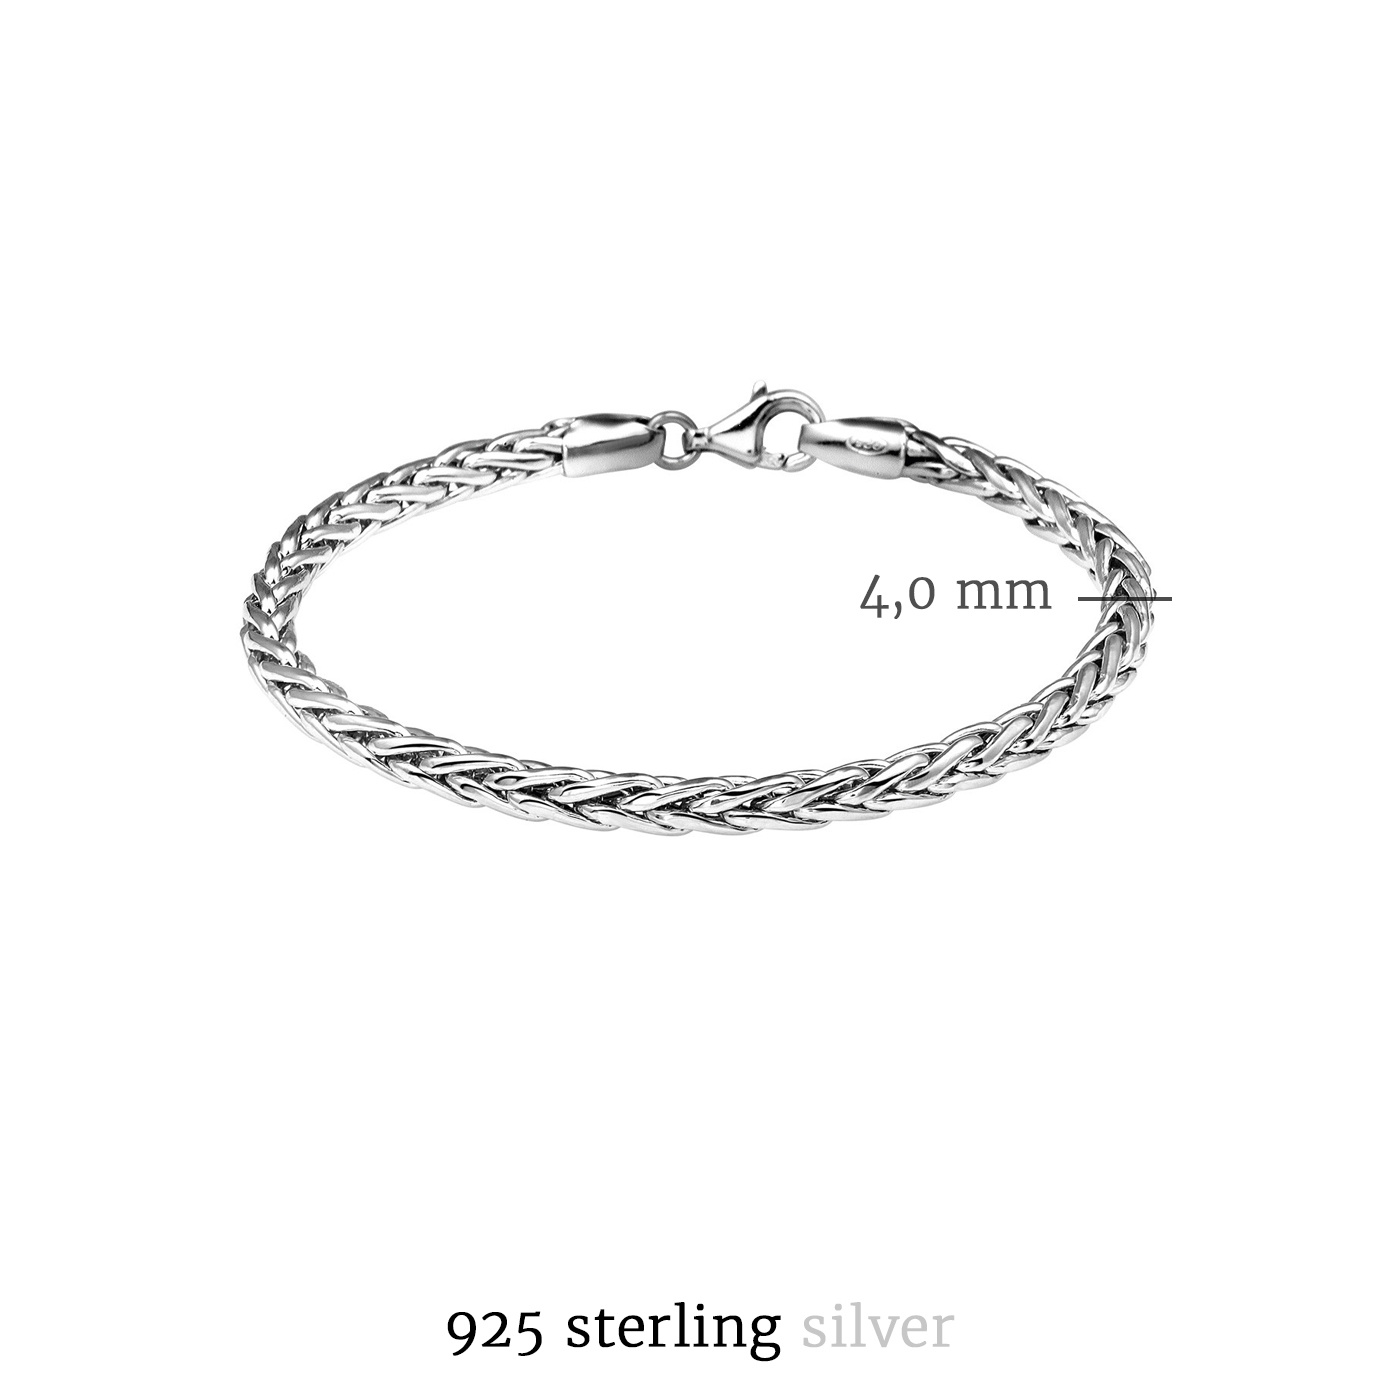 Selected Jewels Emma Vieve armband i 925 sterling silver